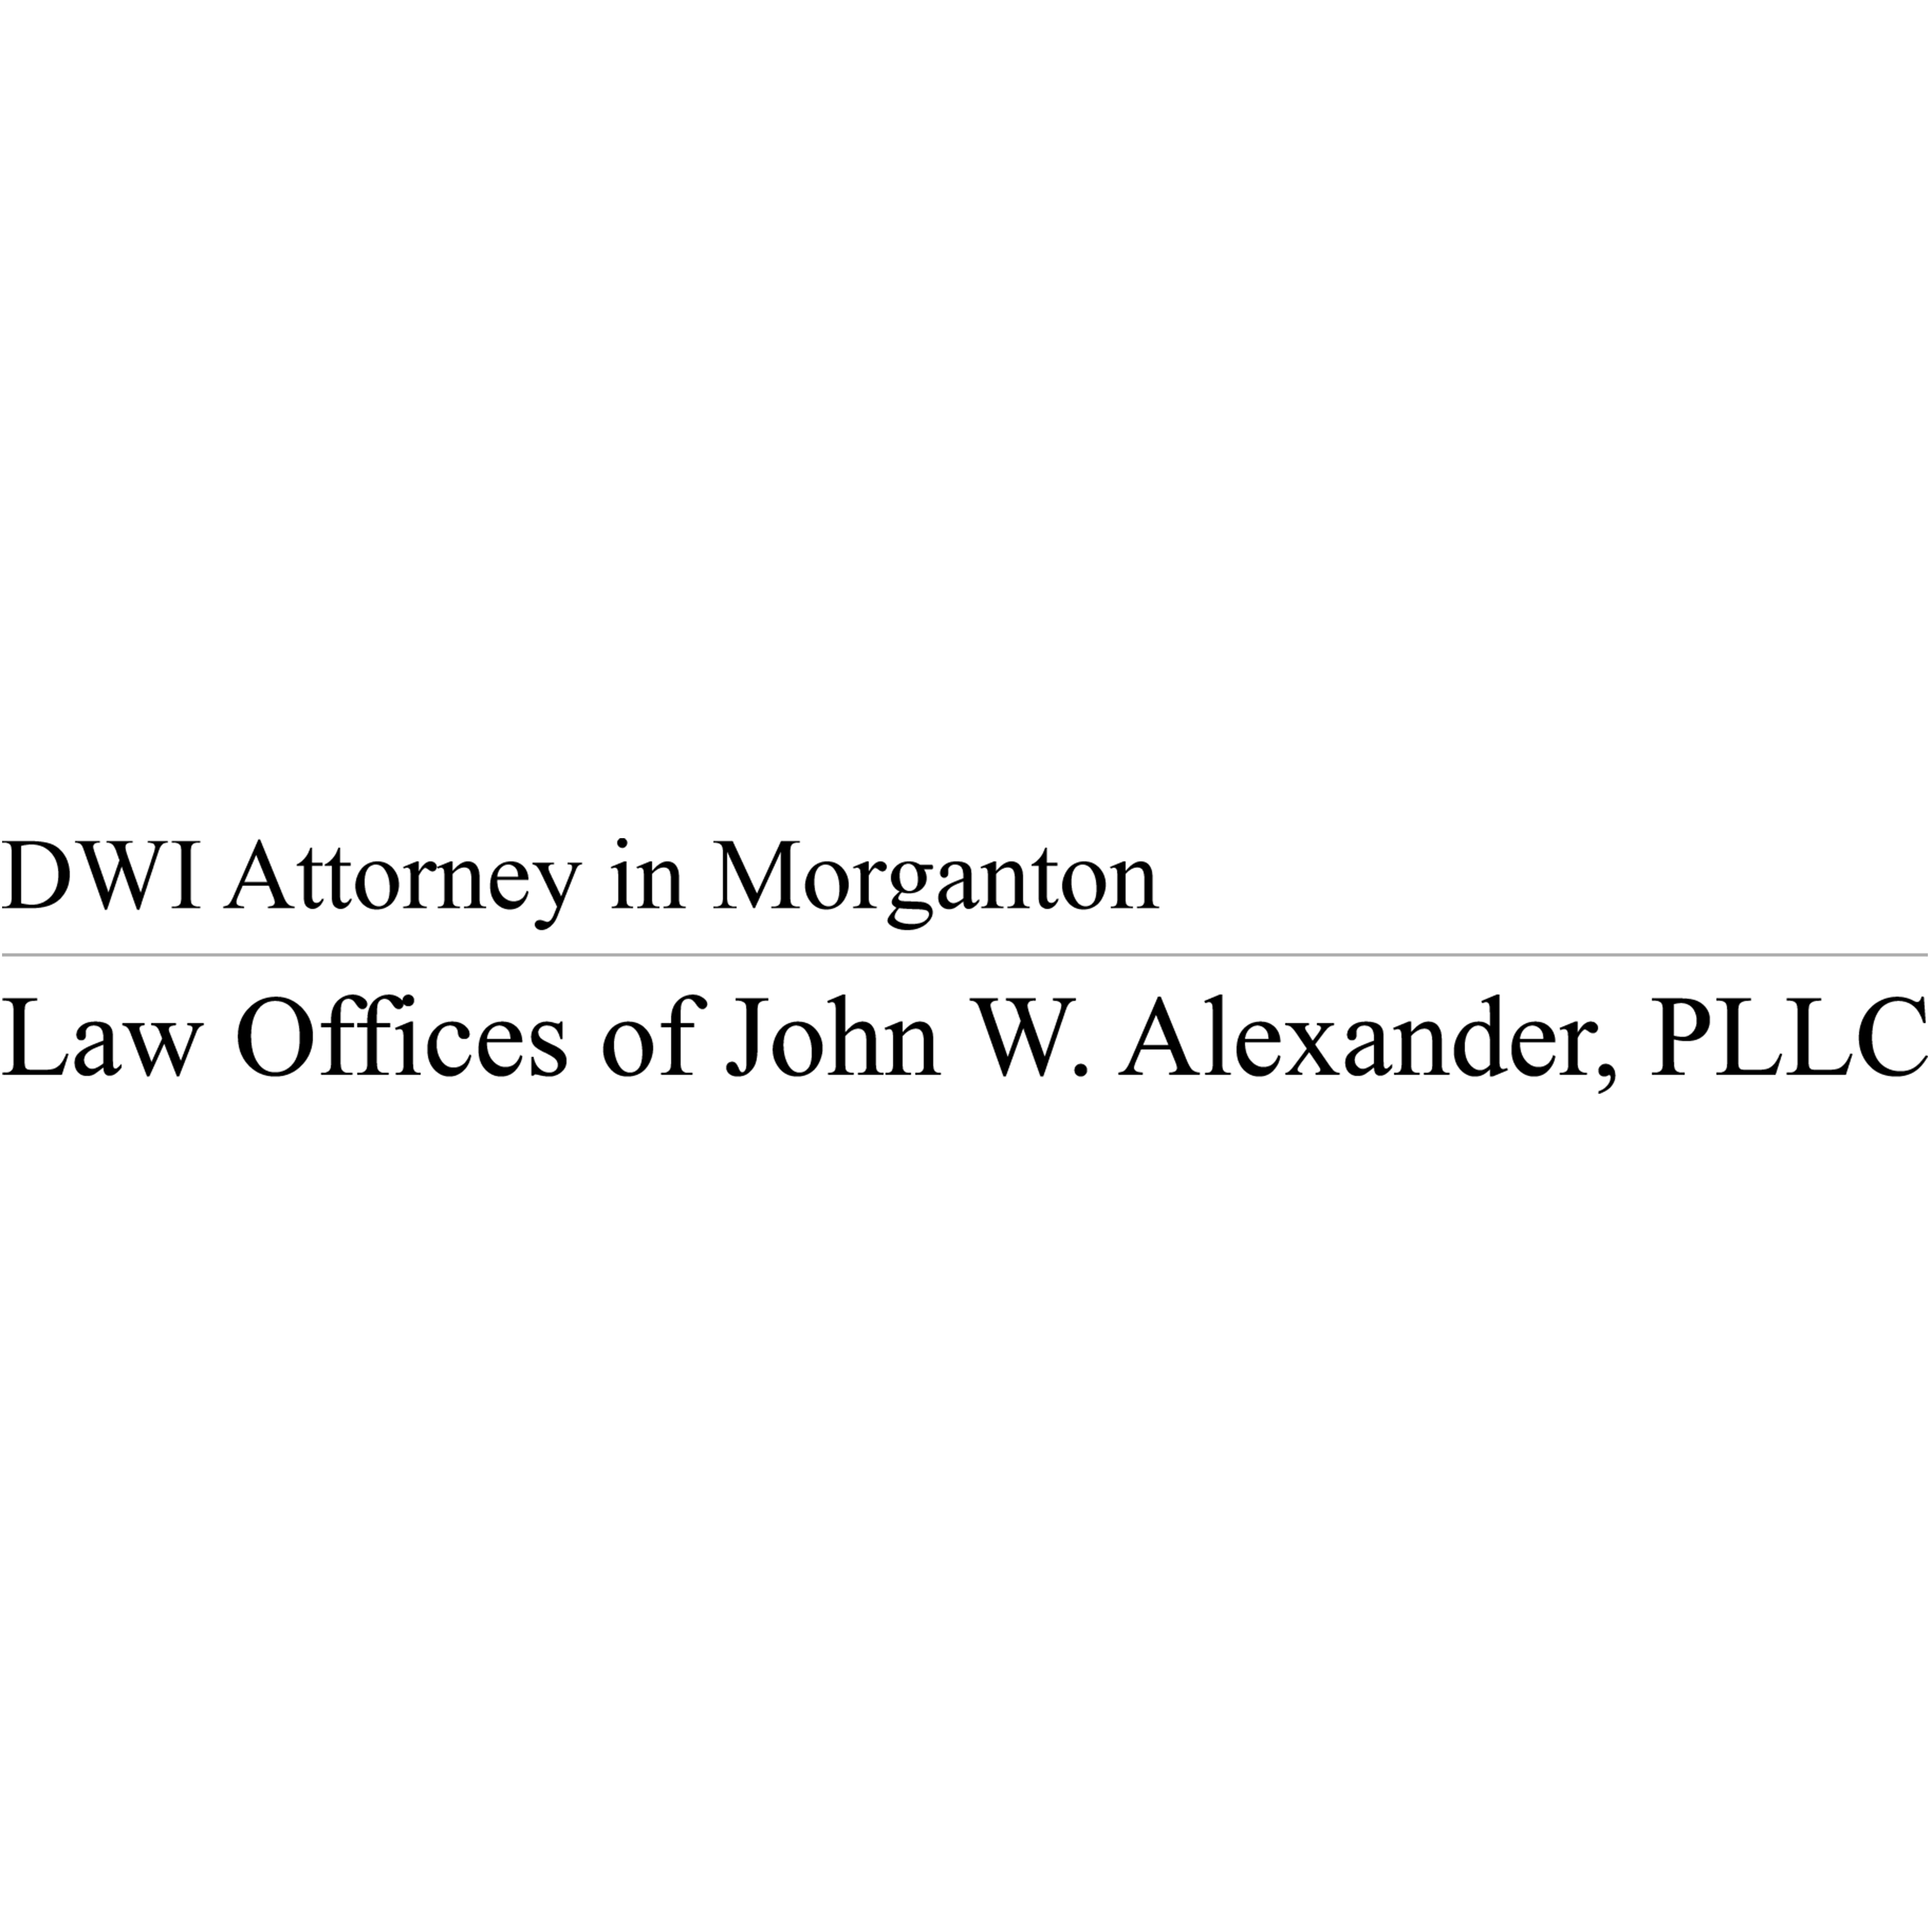 Law Offices of John W. Alexander